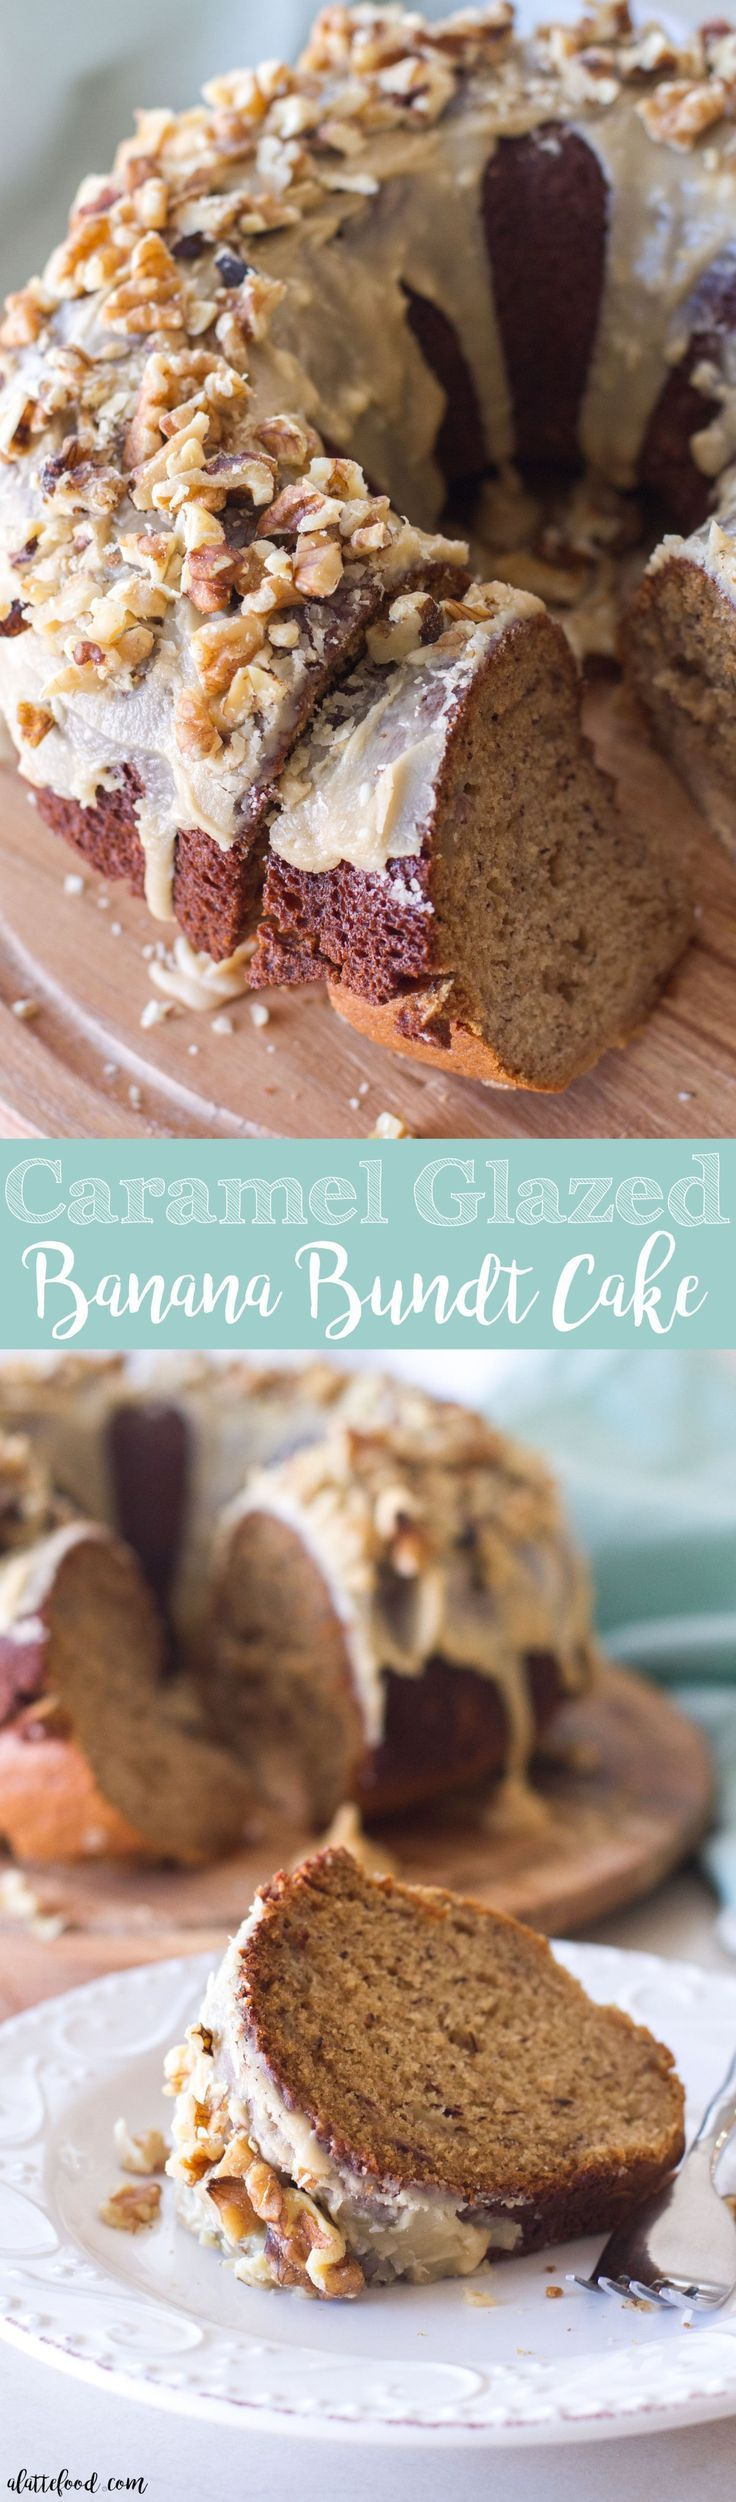 This easy banana bundt cake is topped with the richest caramel glaze! This is the perfect way to use up any leftover bananas!